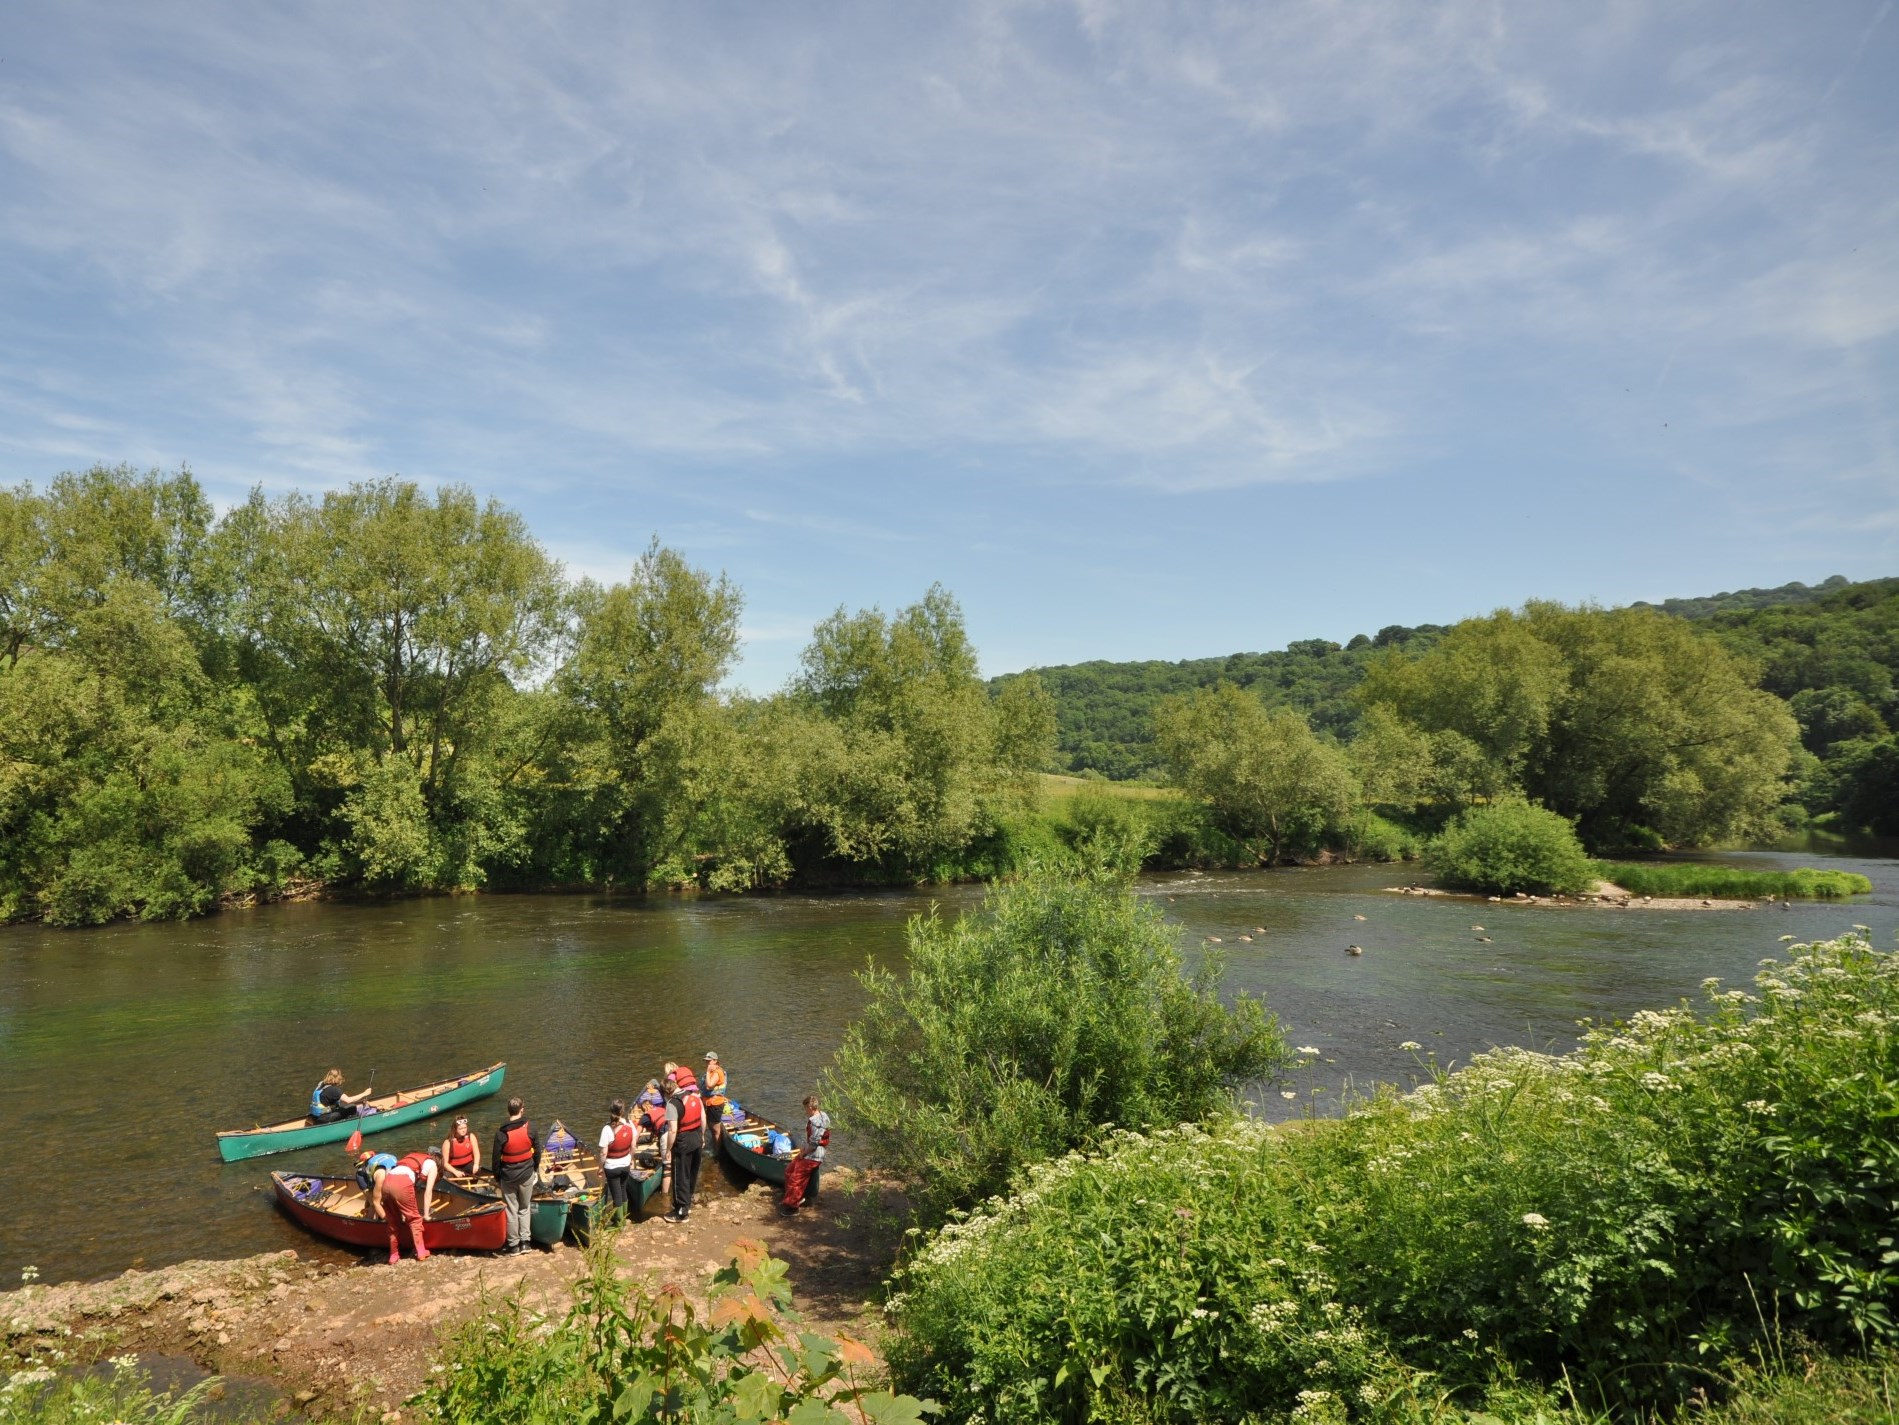 A fun day out on the River Wye